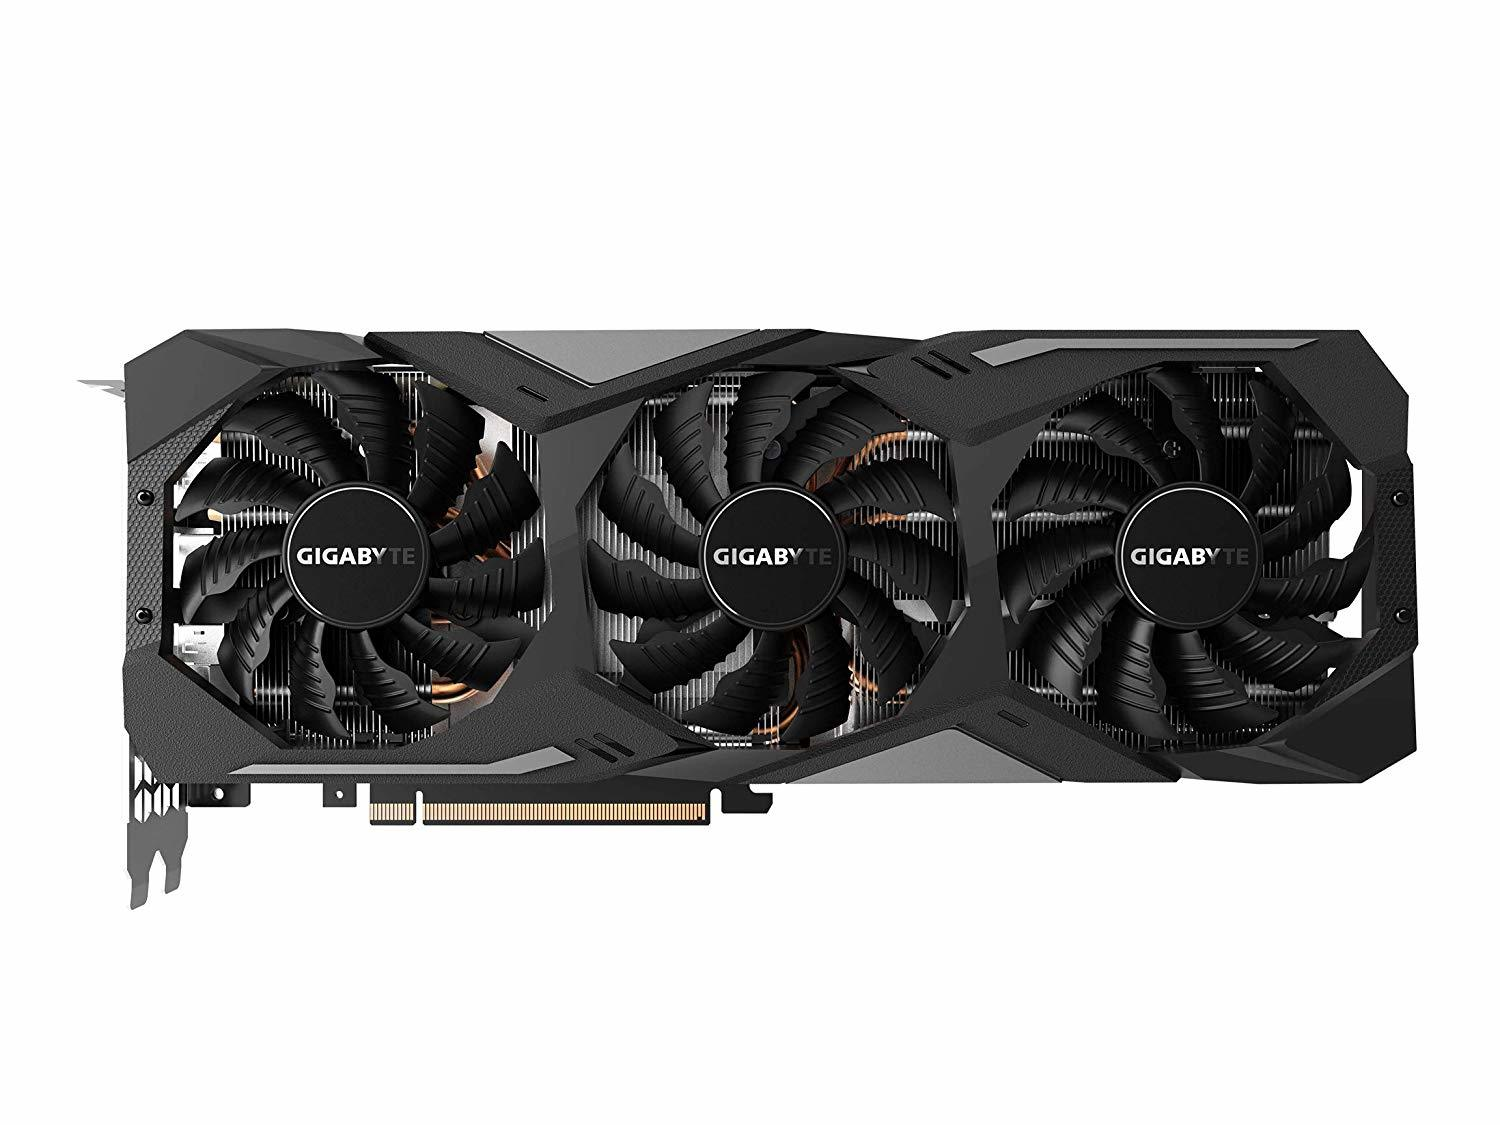 Gigabyte GeForce RTX 2080 Ti GAMING OC 11G Graphics Card image